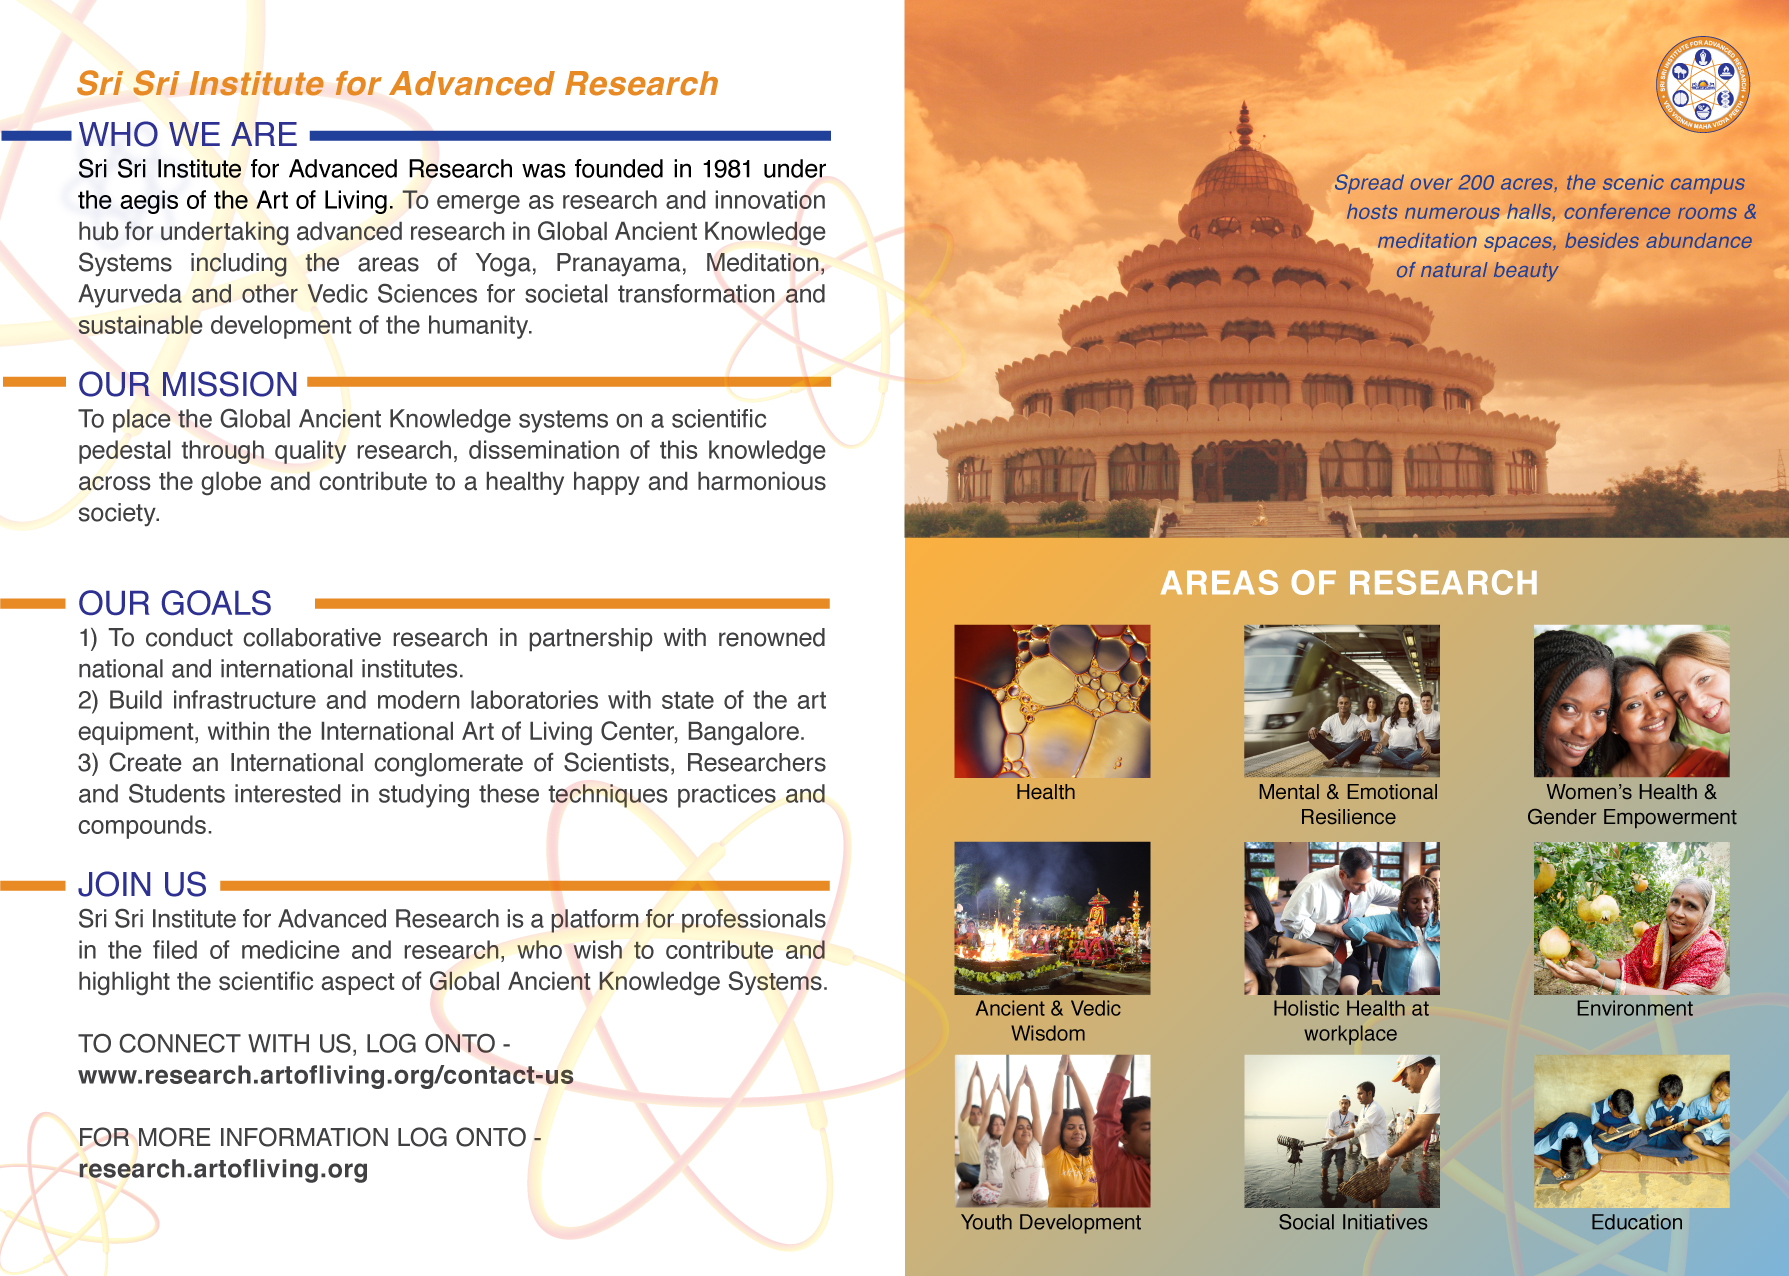 Sri Sri Institute for Advanced Research Brochure 2